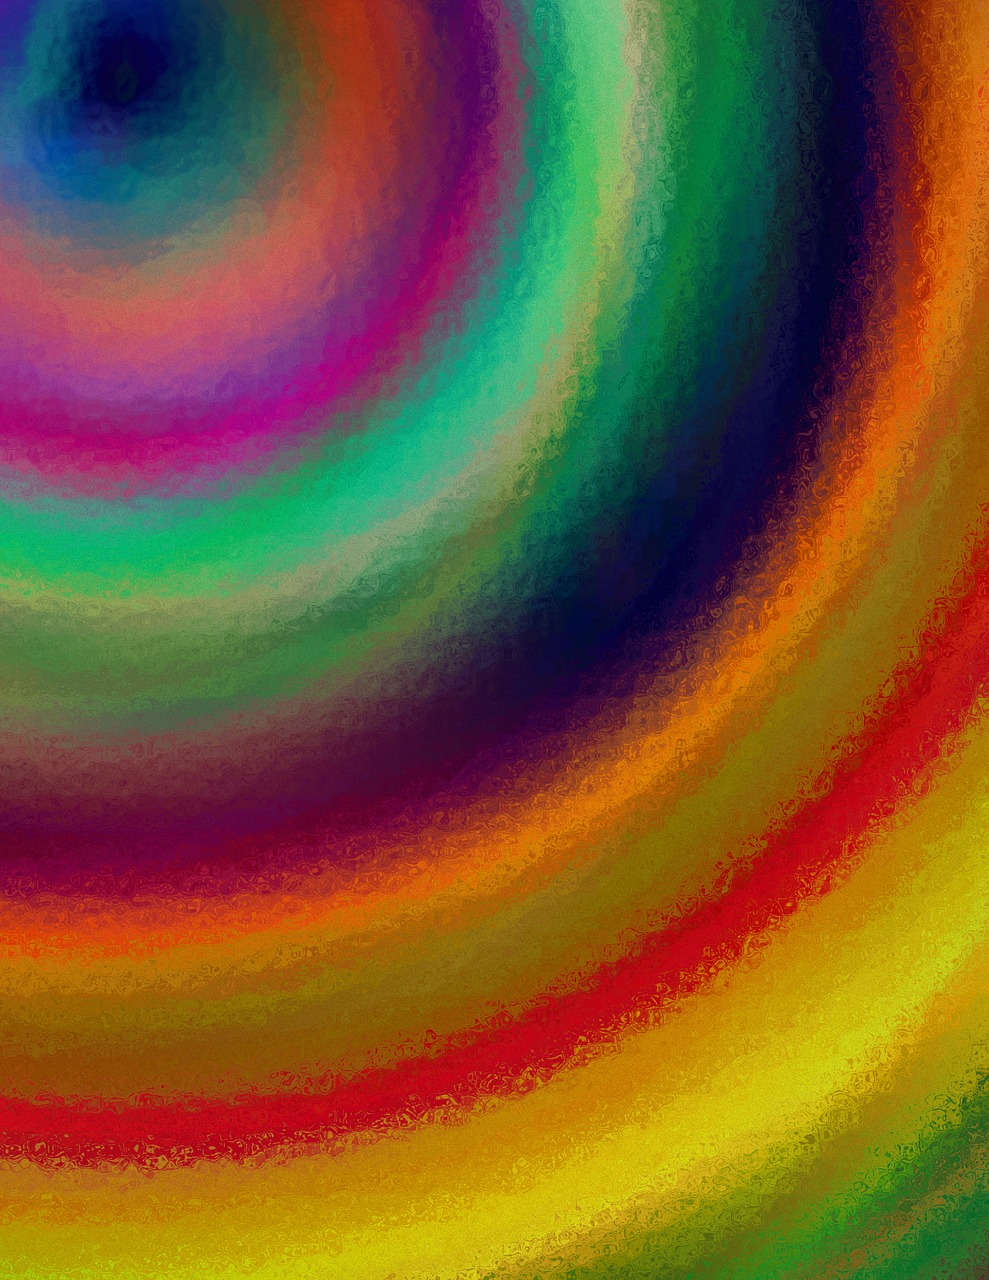 Download Free Photo Of Colourful Background Wallpaper Color Background Colorful Backgrounds From Needpix Com